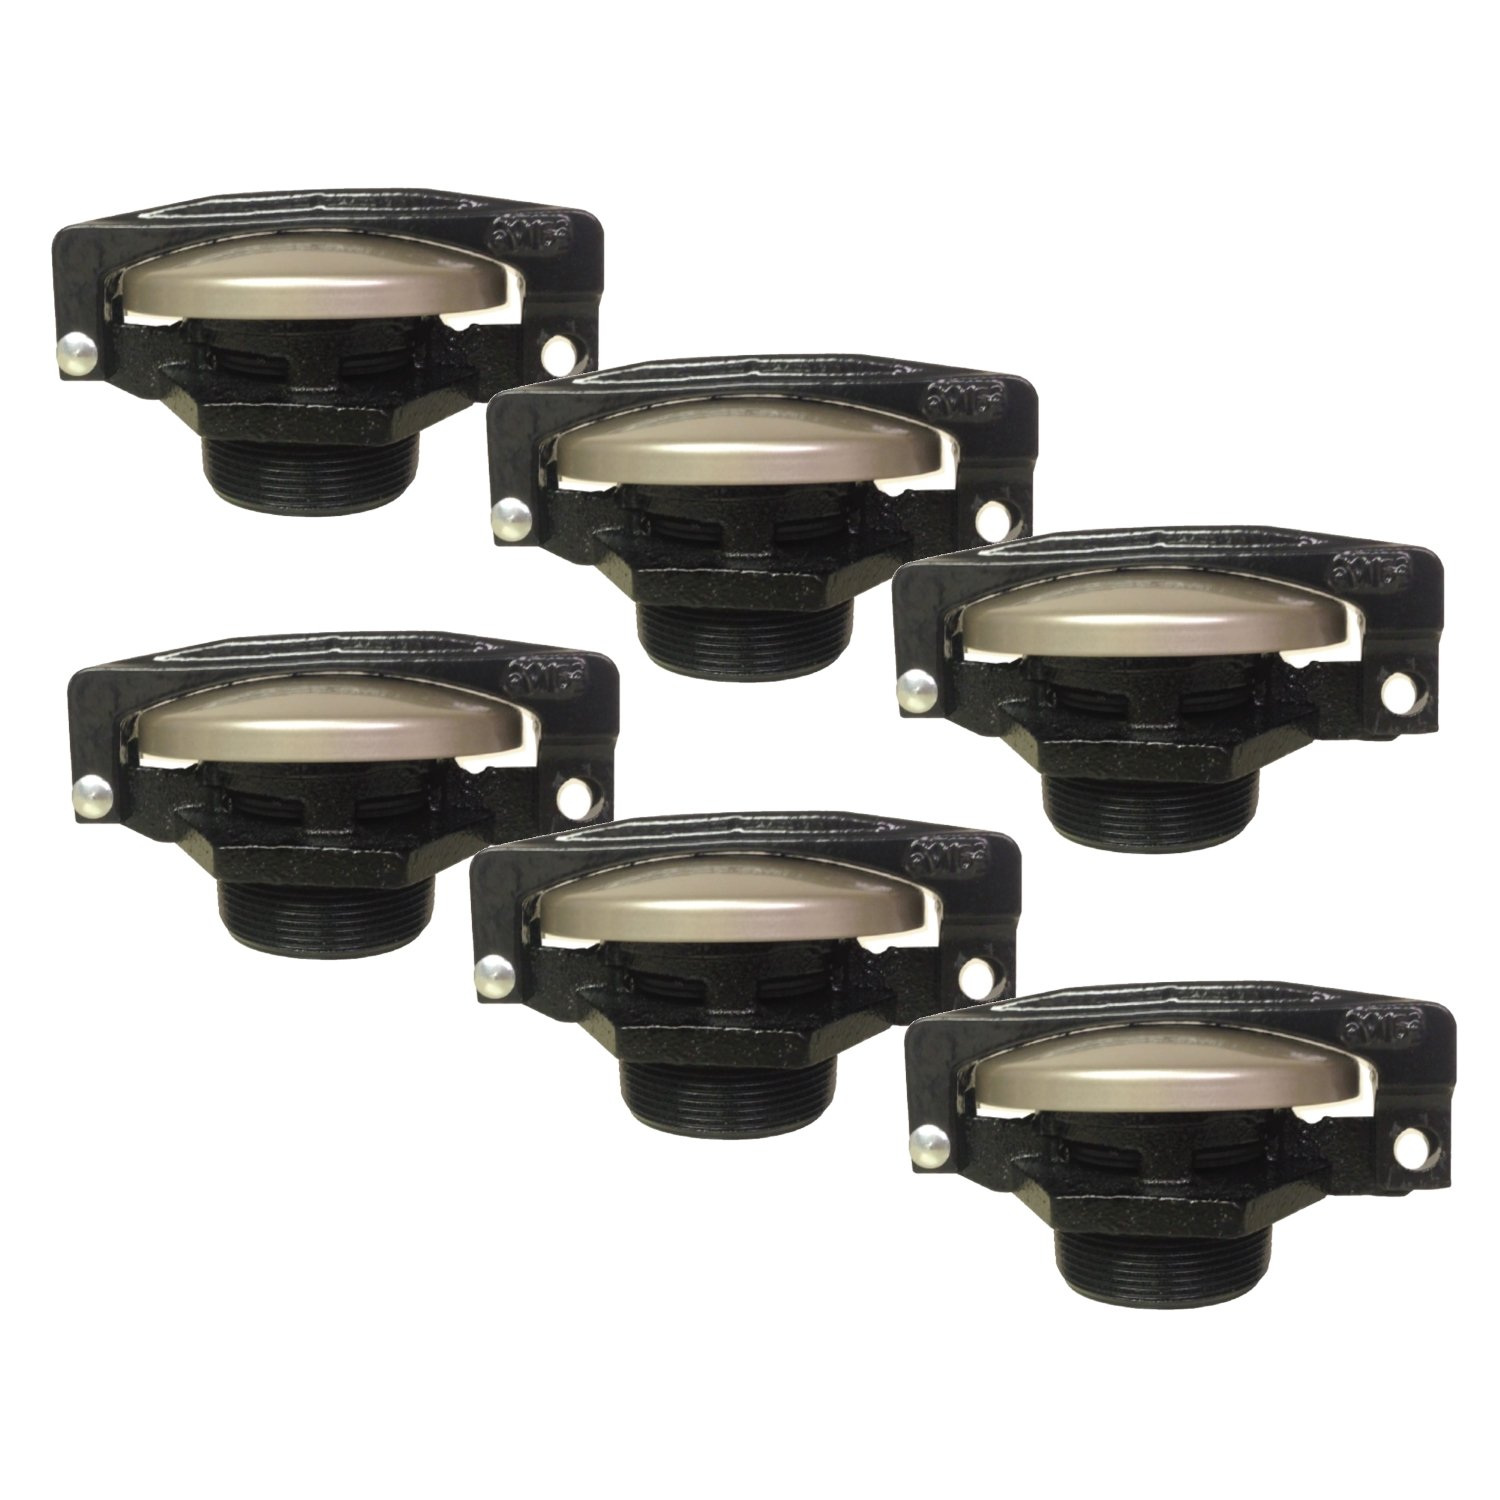 Cim-Tek 60002-6 Pre-Vent Cap & Base w/ Lock Arm; 6 Pack